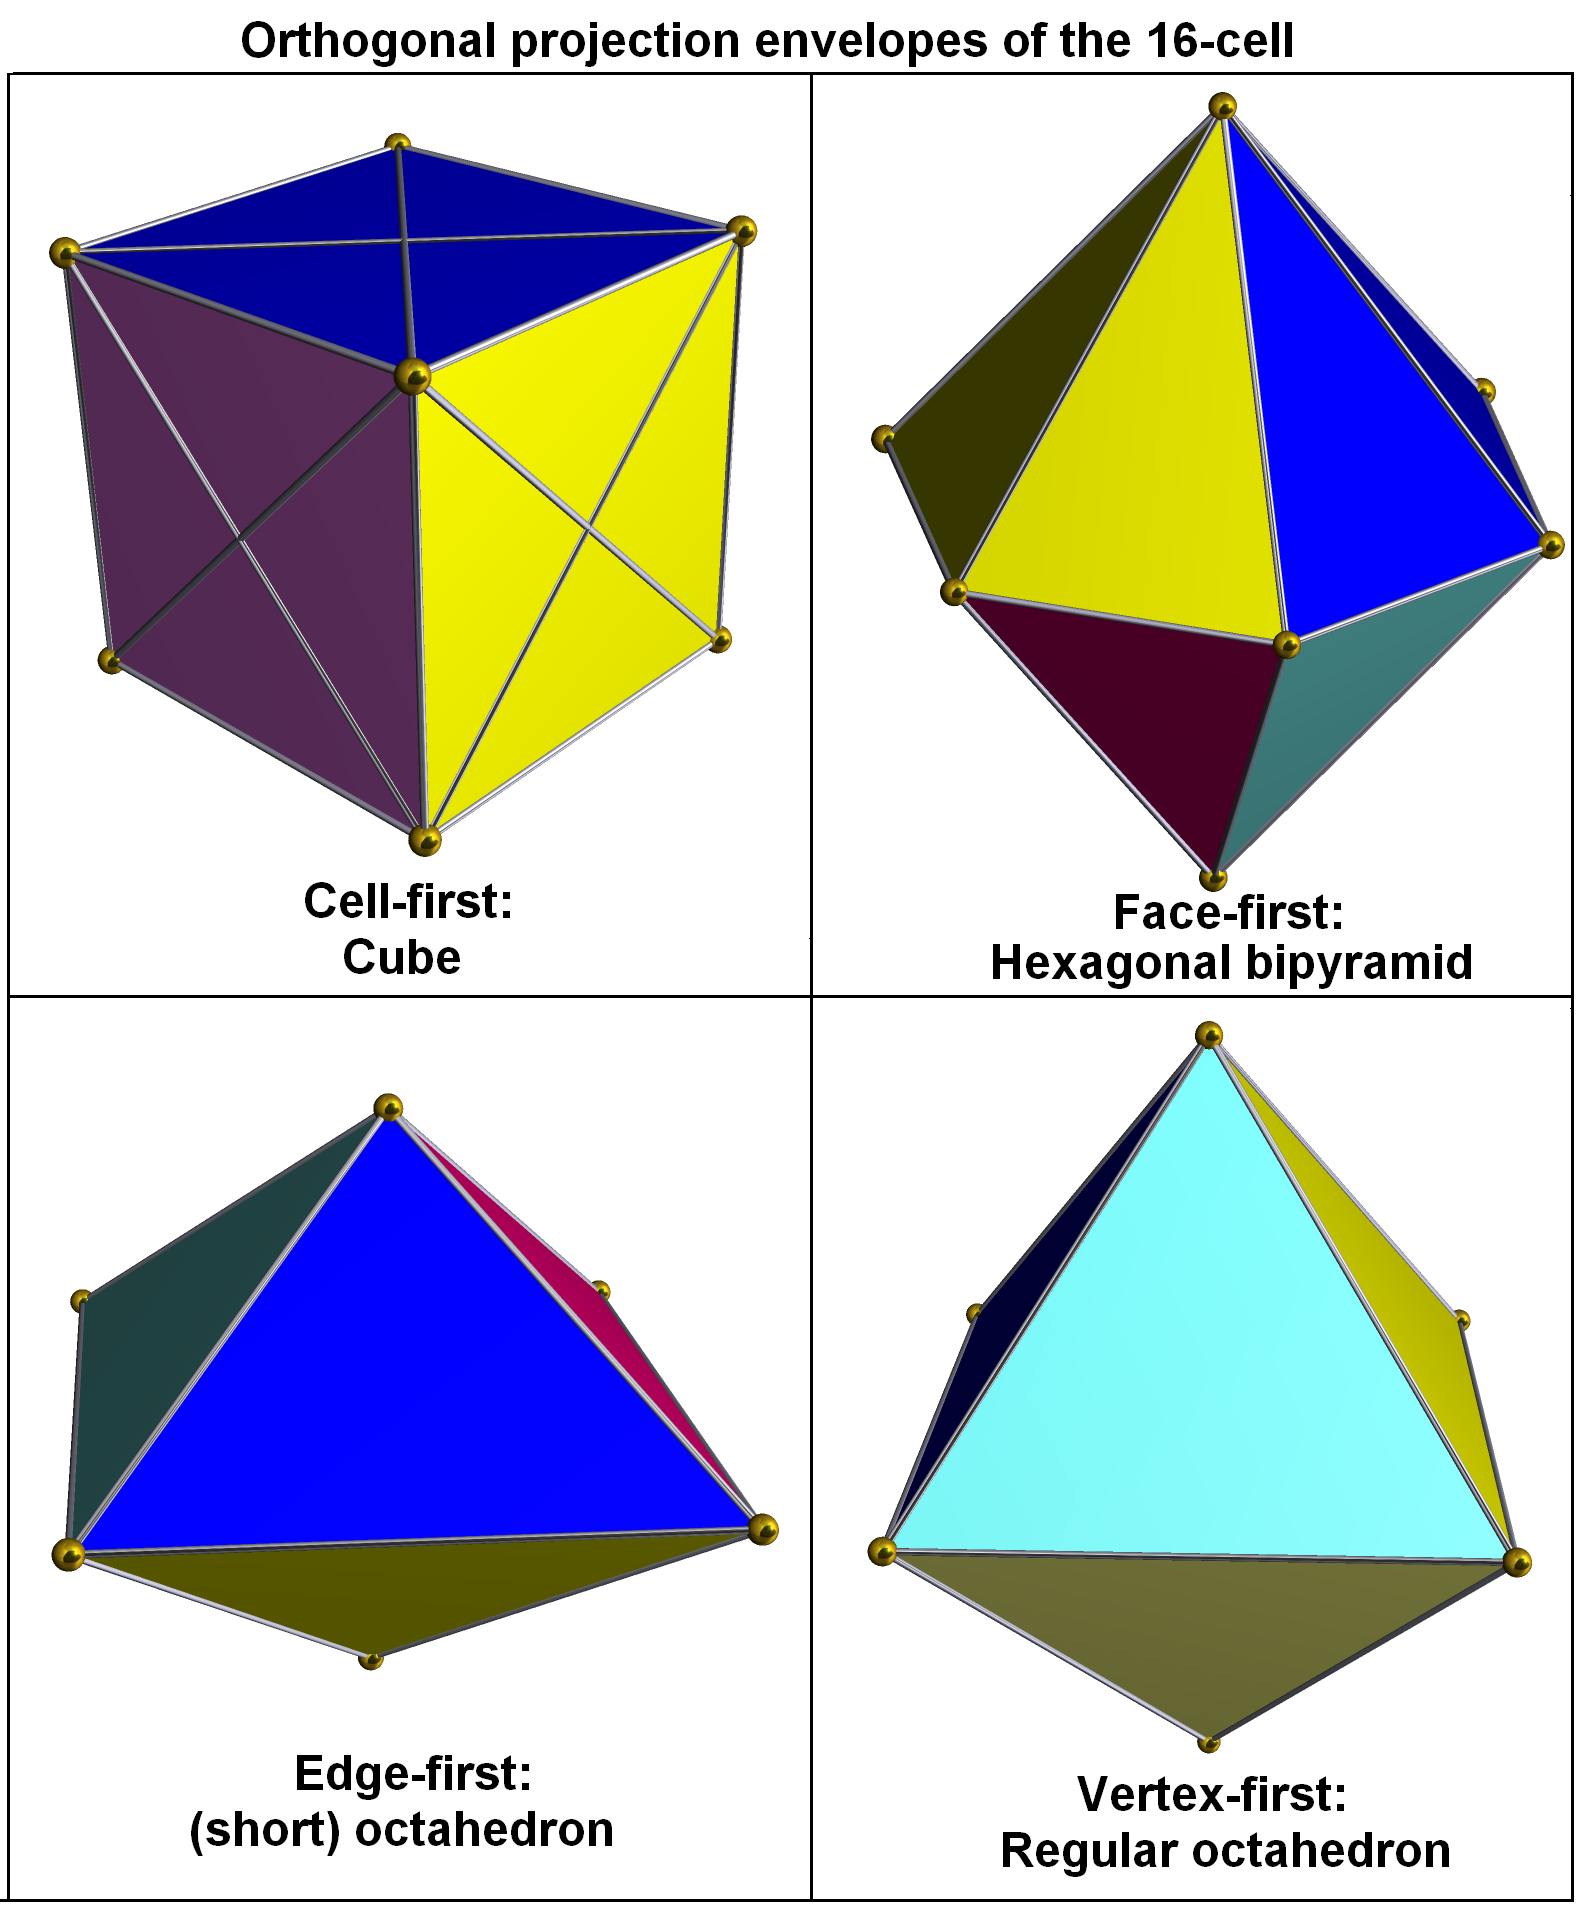 File:Orthogonal projection envelopes 16-cell.png - Wikimedia Commons